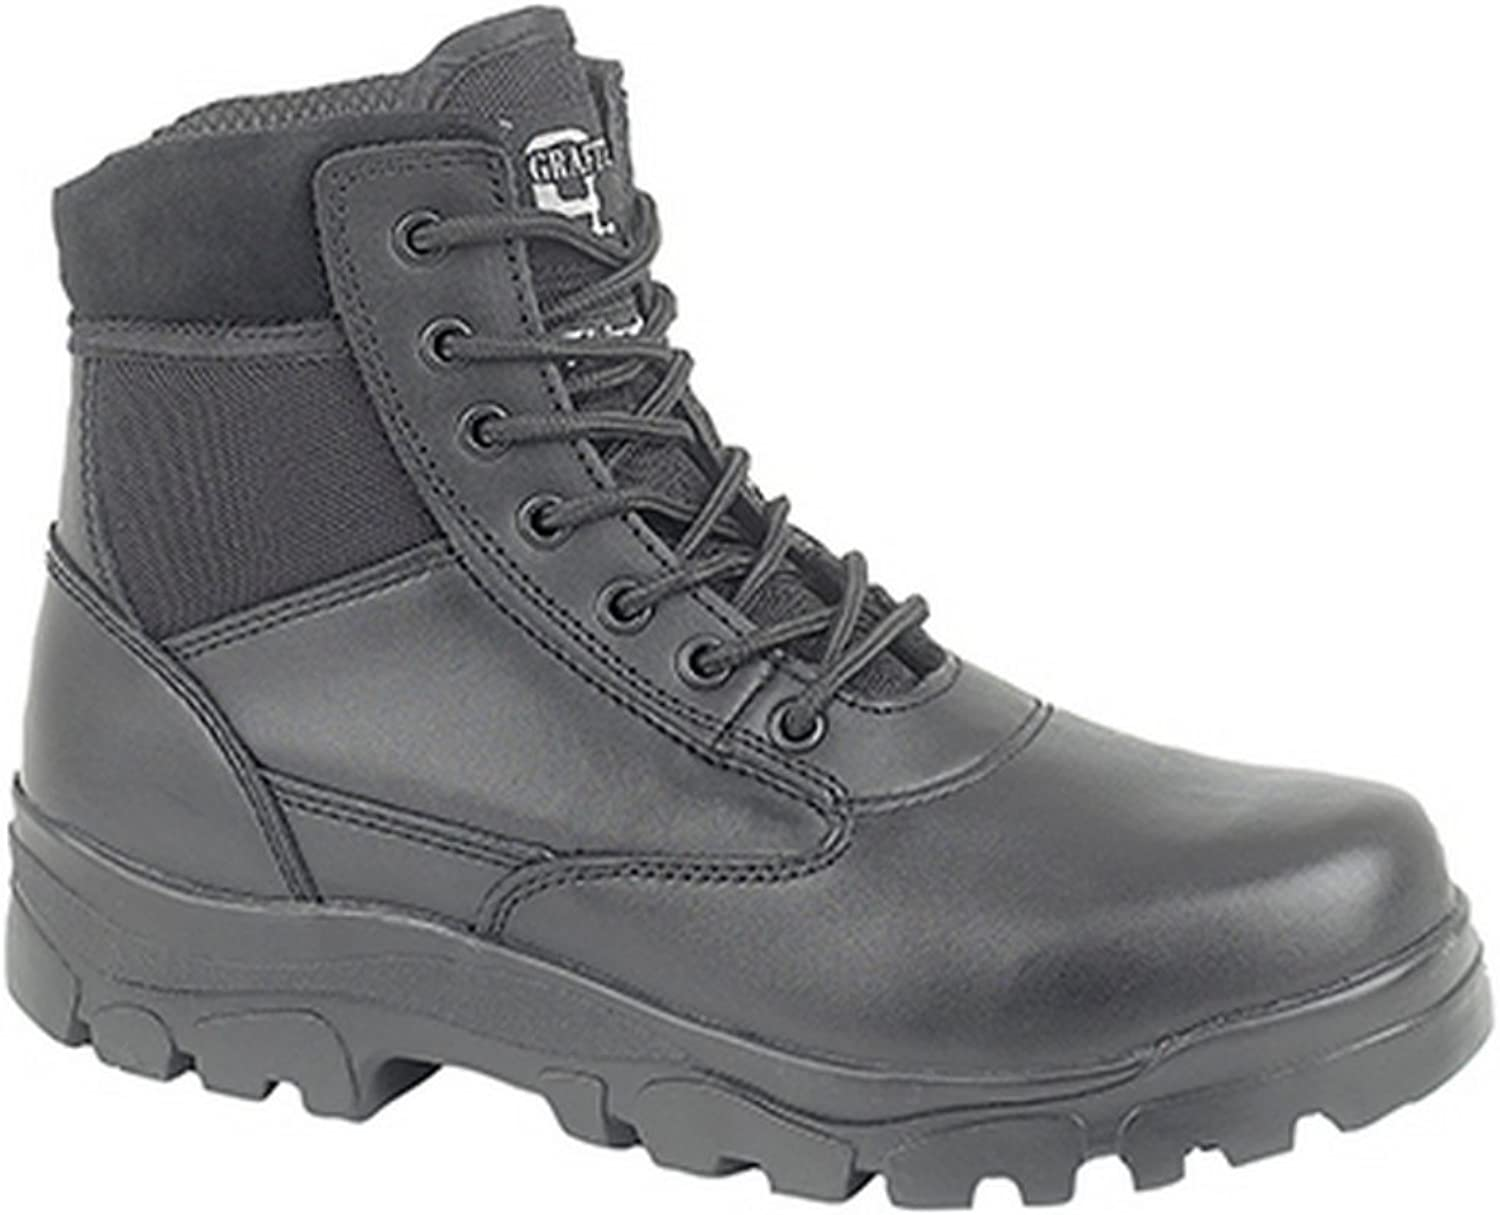 Grafters Sherman Combat Type Safety Boot Size 07